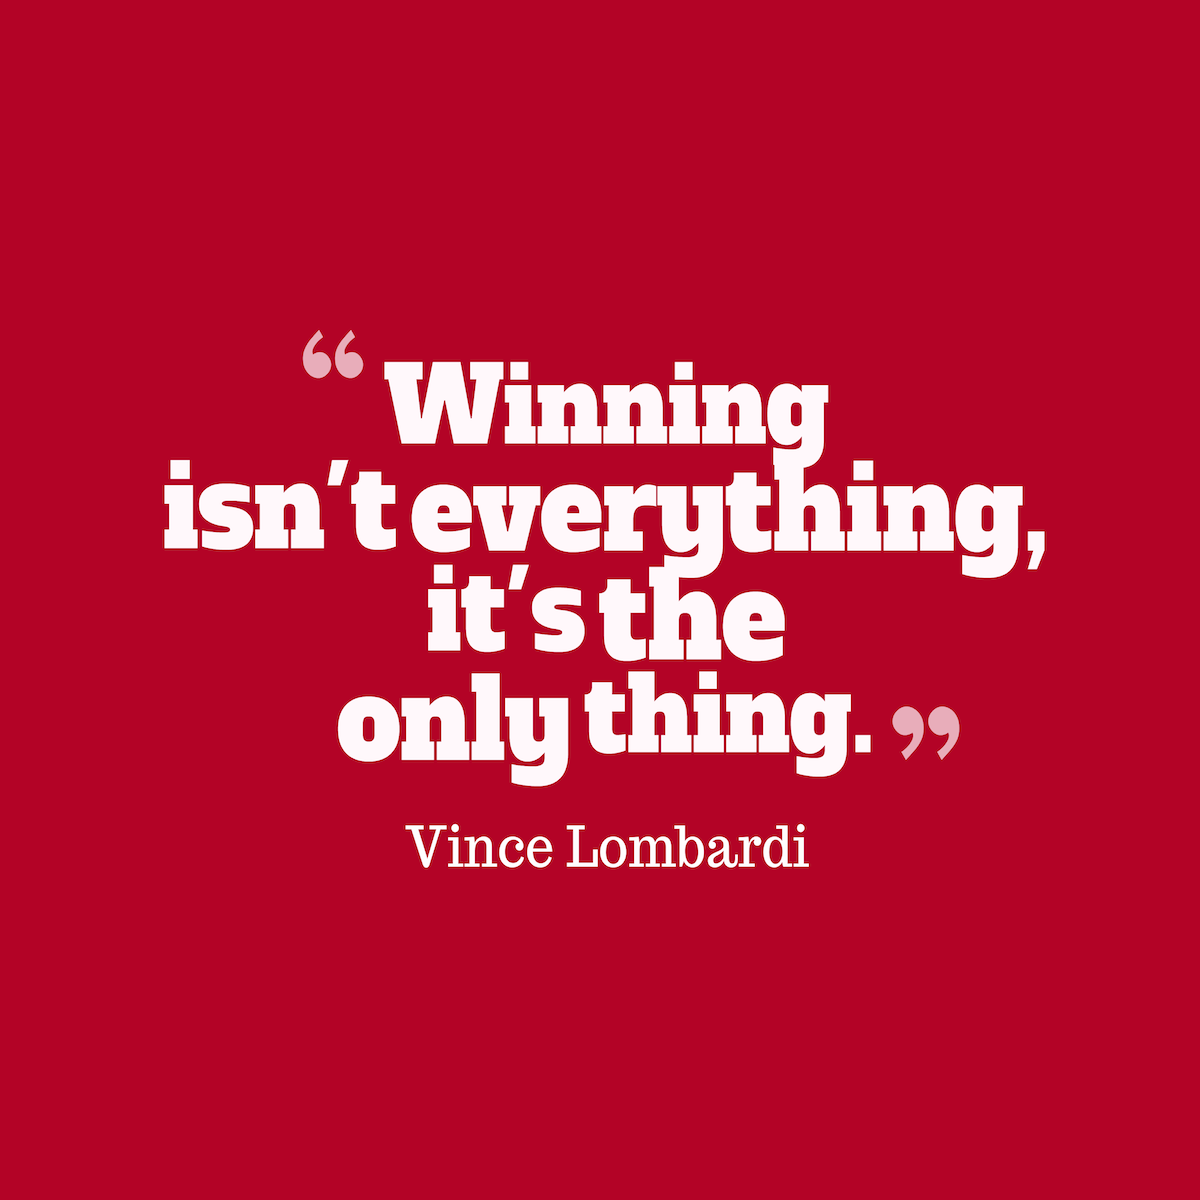 Quotes About Winning Vince Lombardi  Do You Know The Rest Of The Story Behind This Quote .